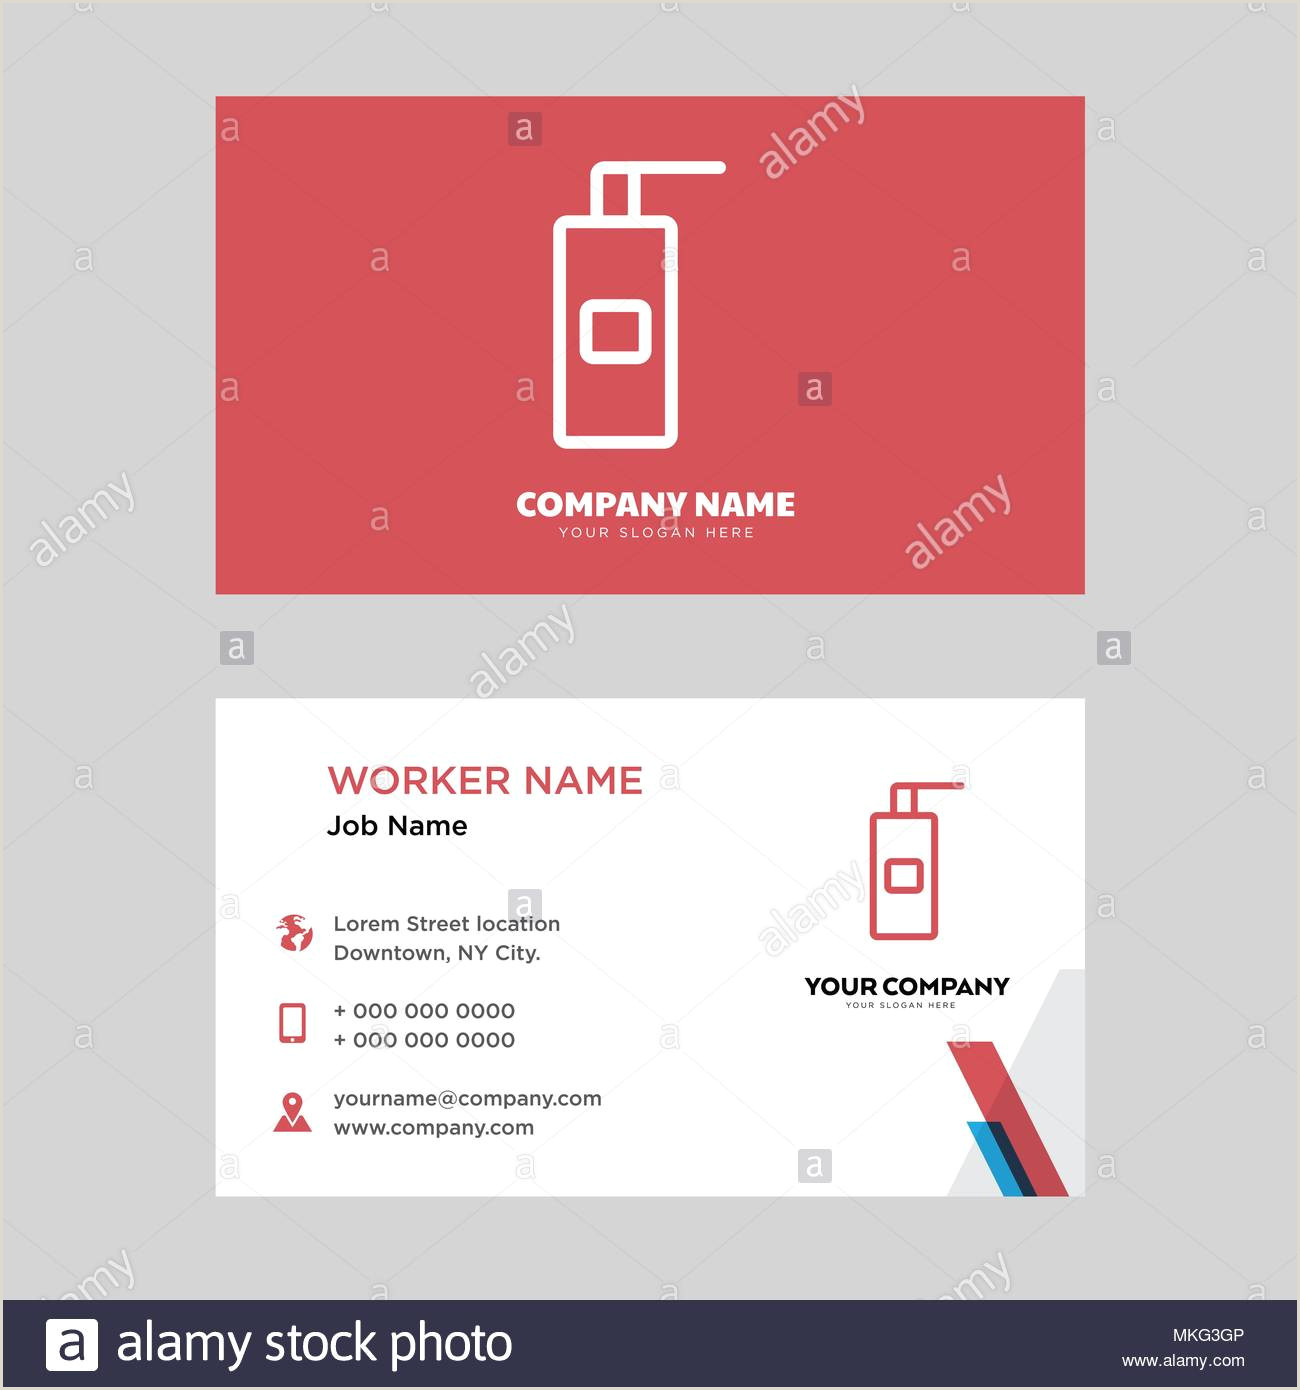 Best Business Cards For Soap Labels Liquid Soap Business Card Design Template Visiting For Your